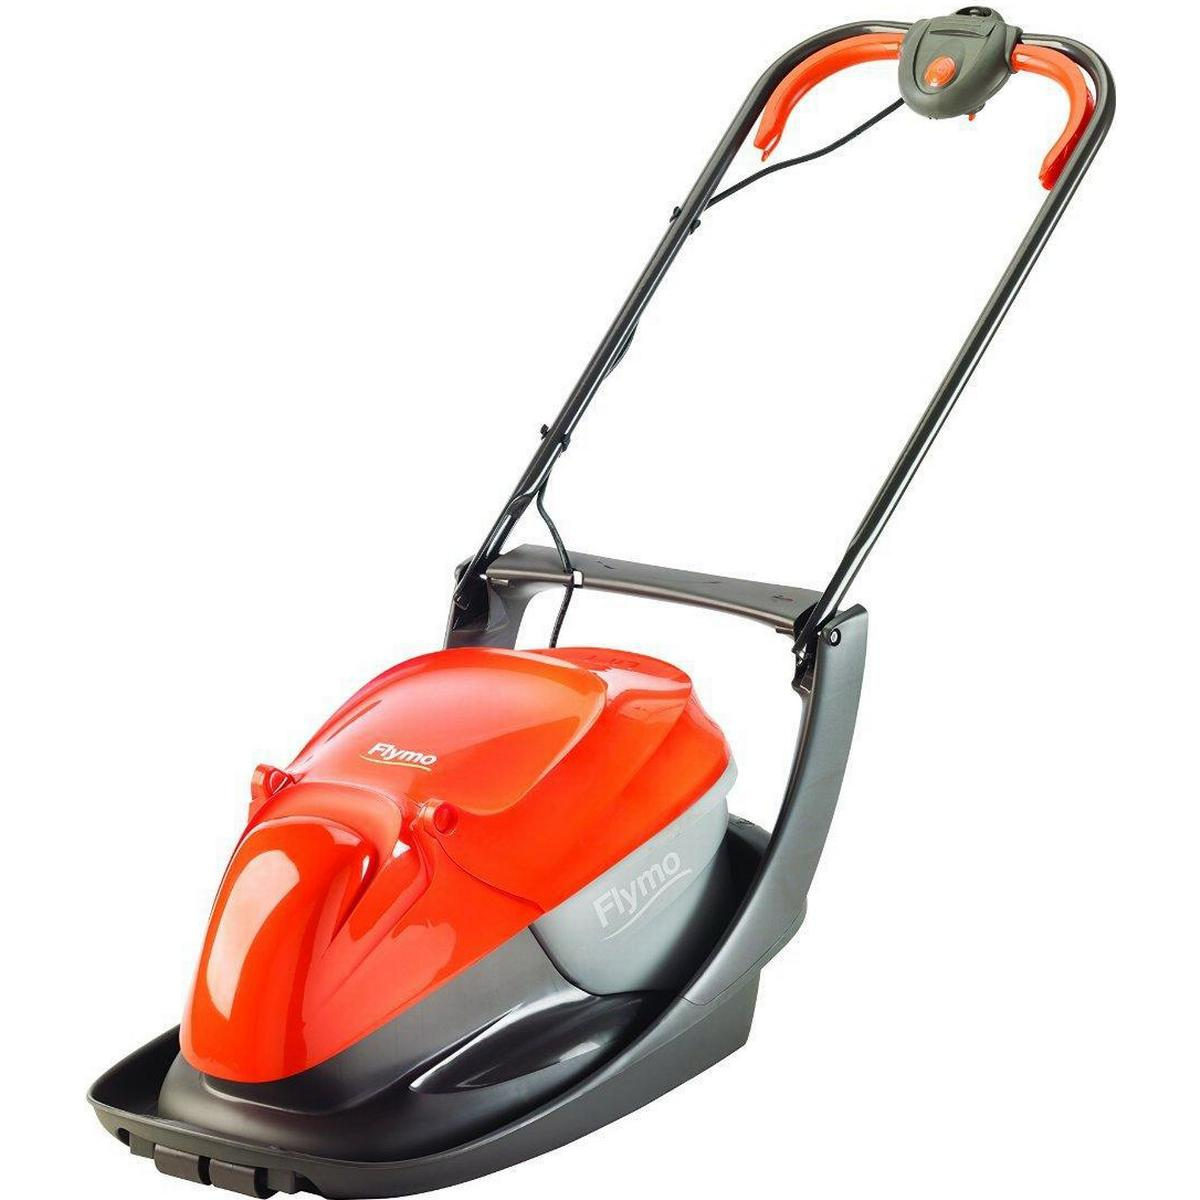 Lawn Mowers (1000+ models) at PriceRunner • Find the lowest